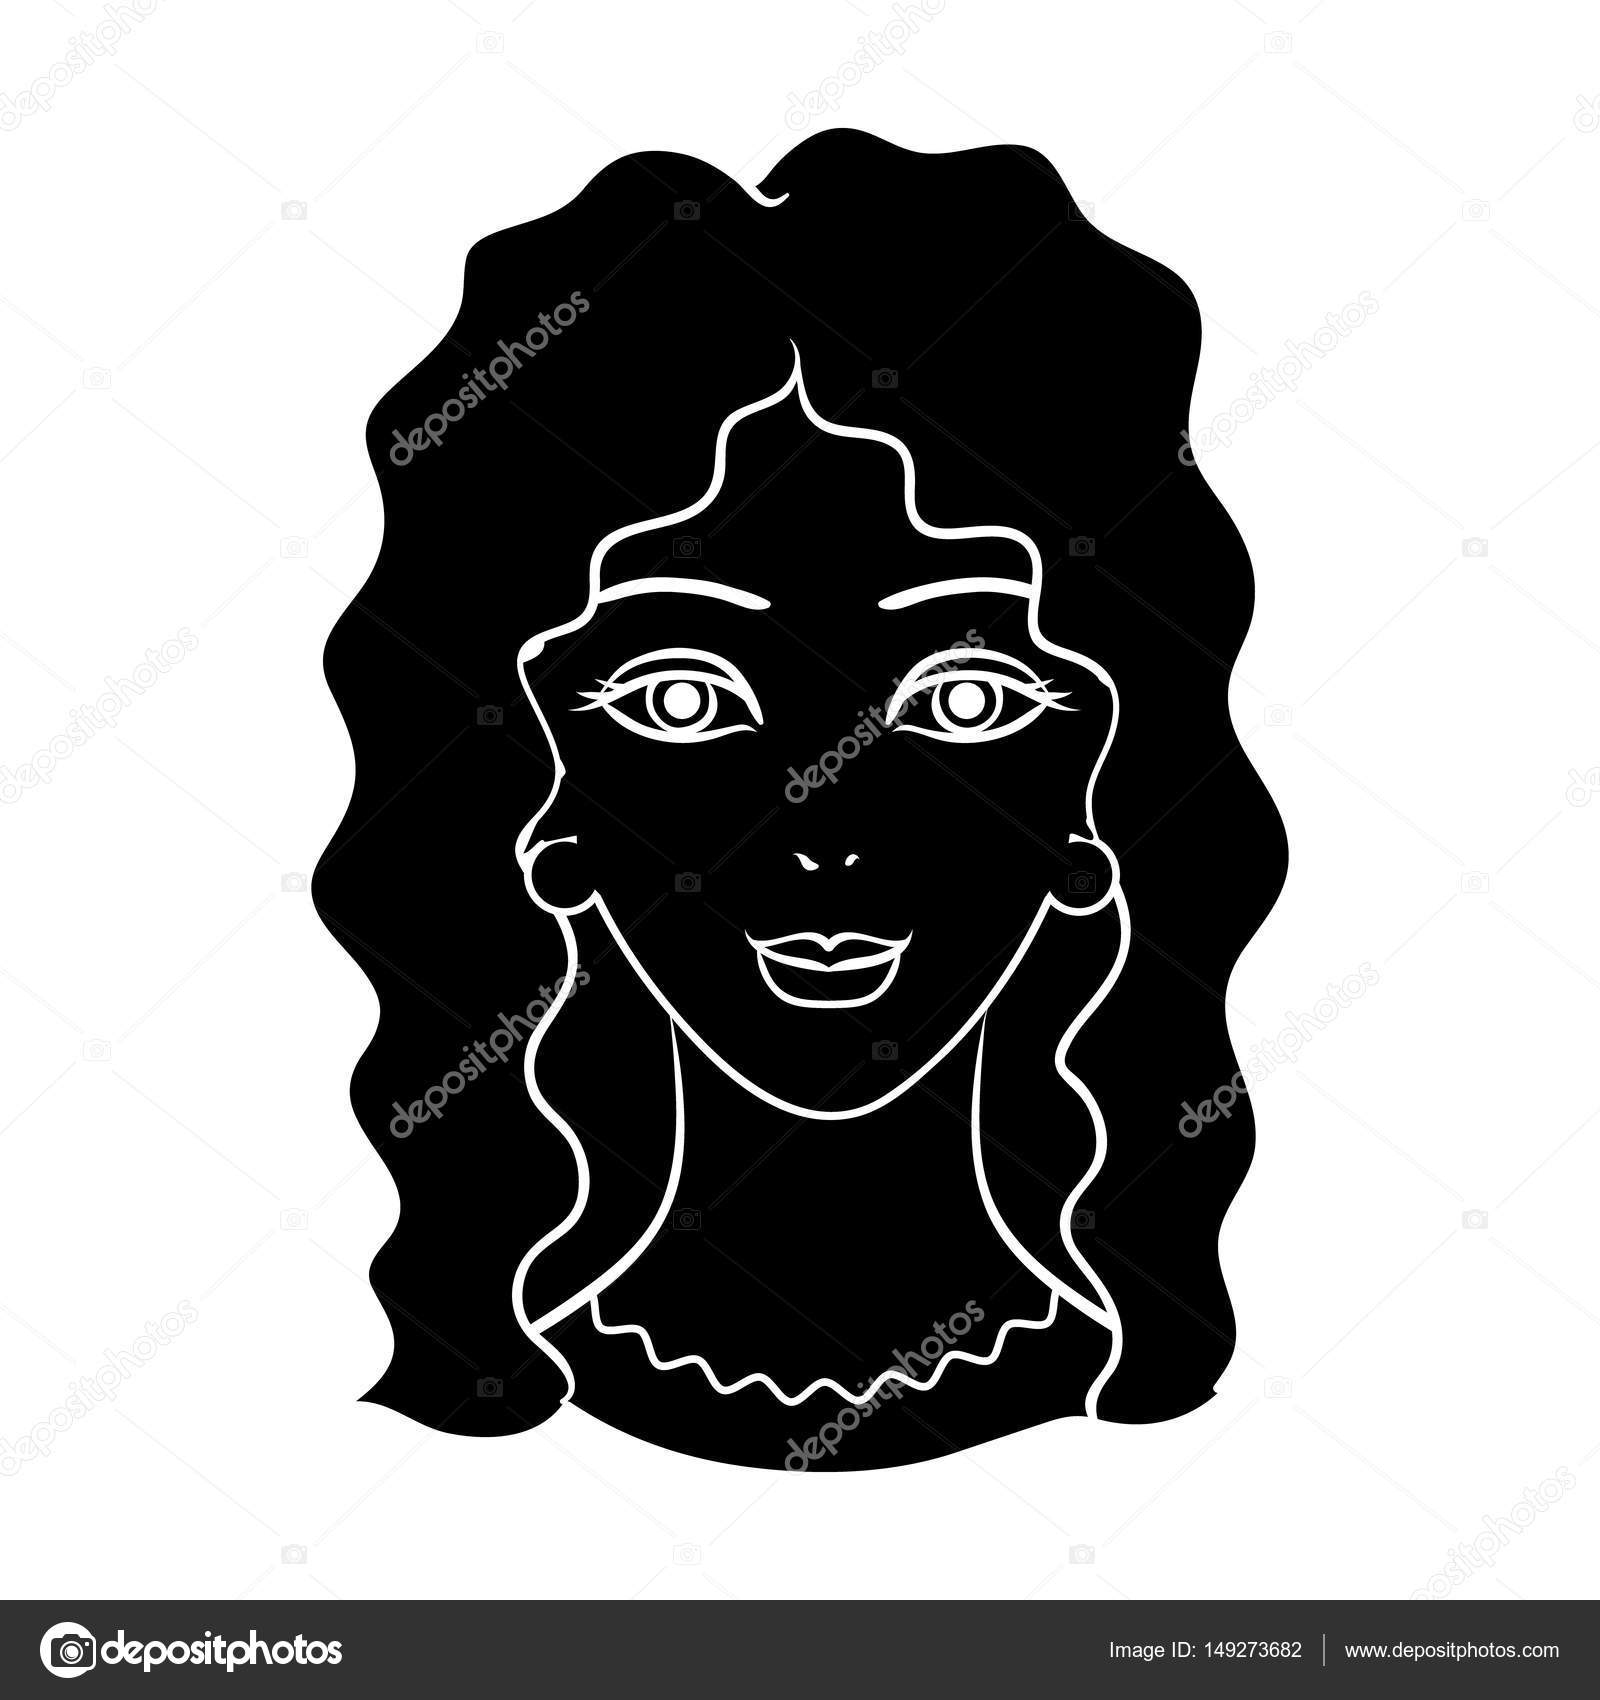 Avatar Of A Woman With Curly Hair Avatar And Face Single Icon In